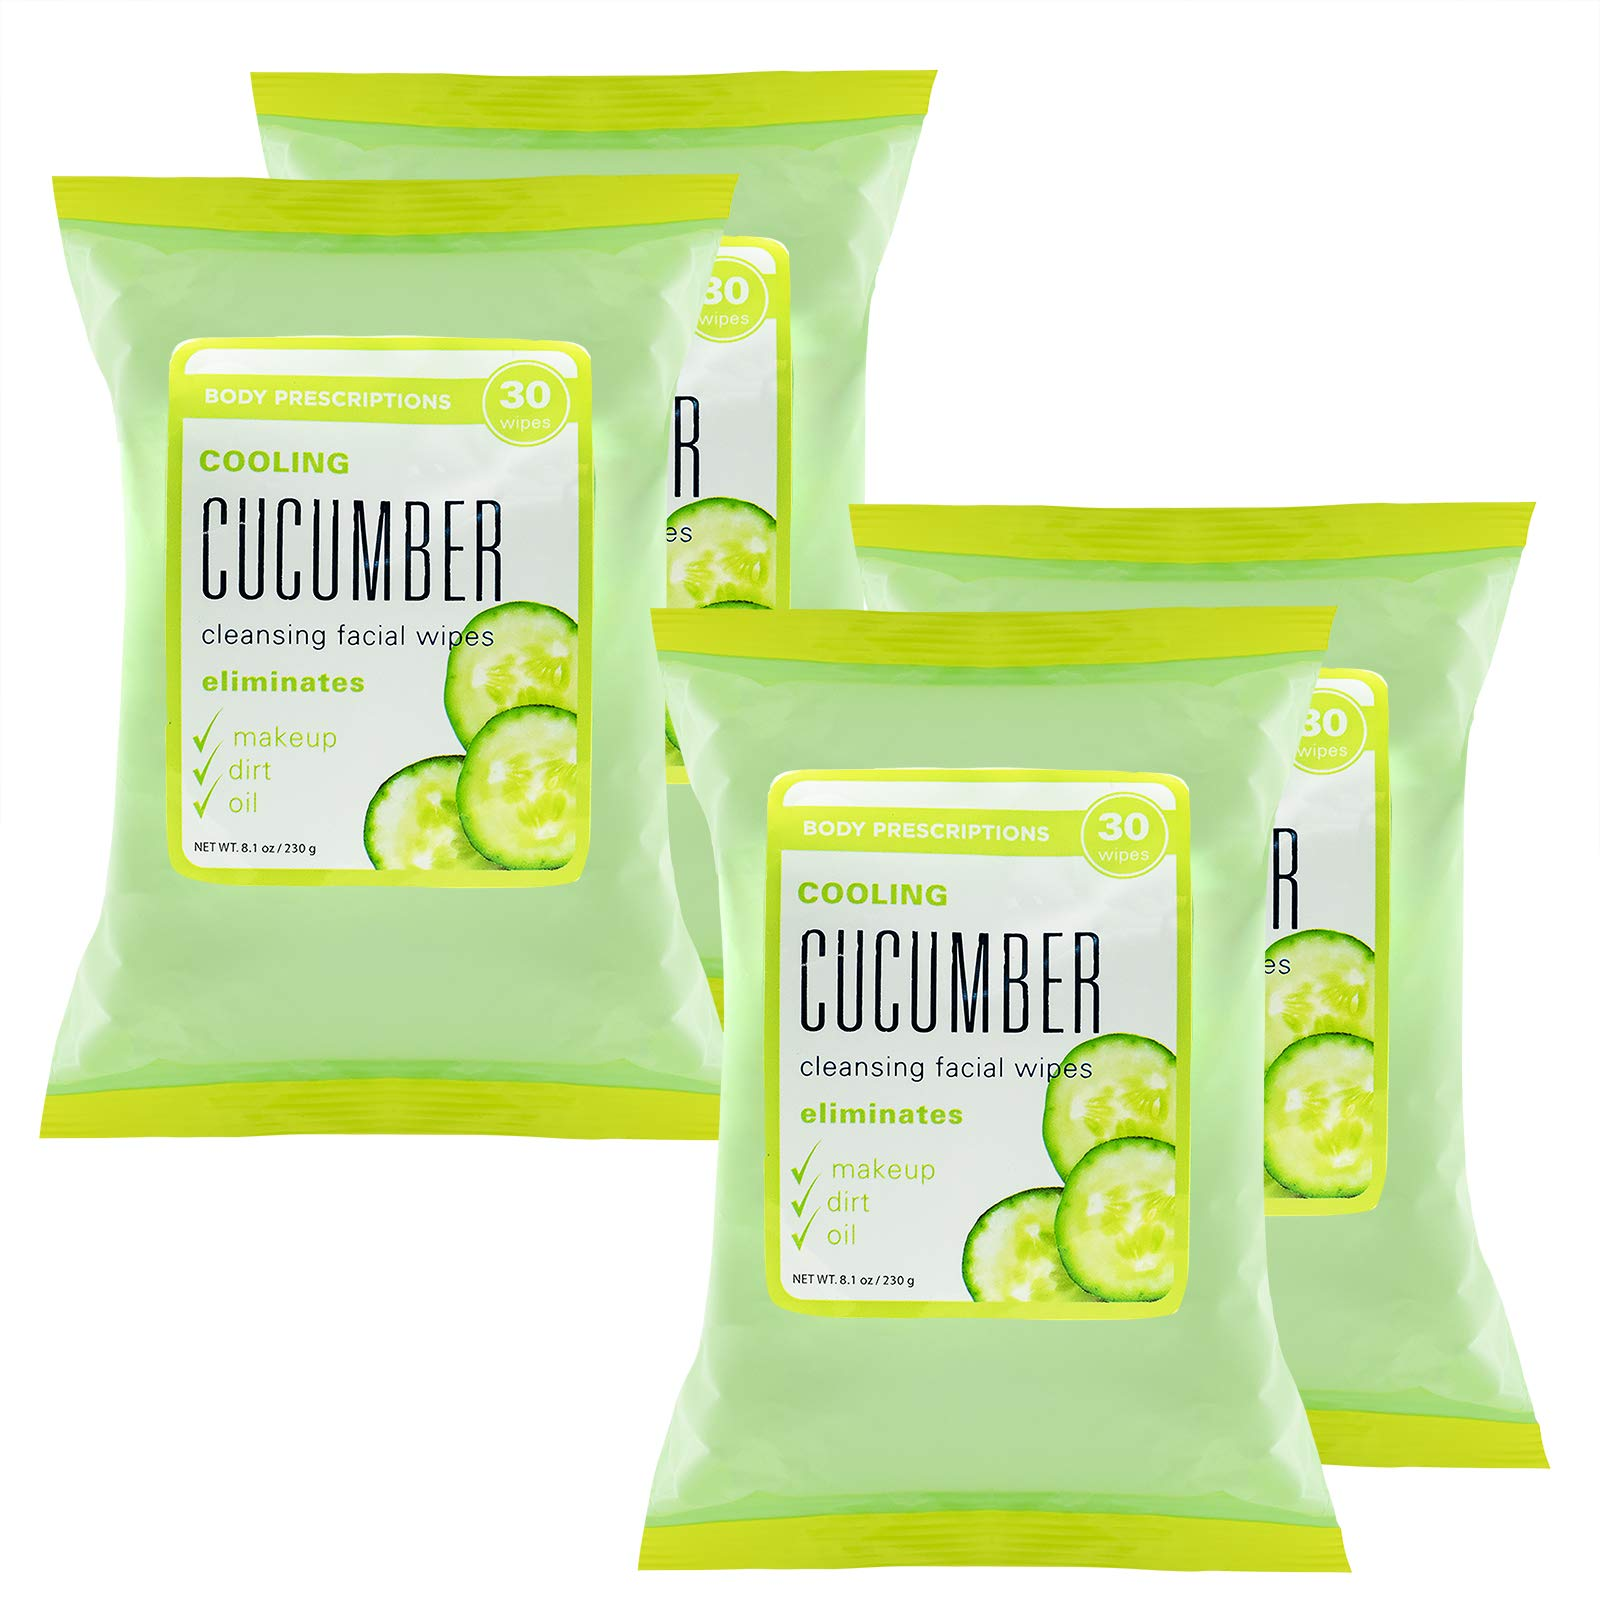 Body Prescriptions Face Wipes & Makeup Remover Wipes - 4 Pack (30 Count Each) of Gentle Facial Towelettes – (Cooling Cucumber)